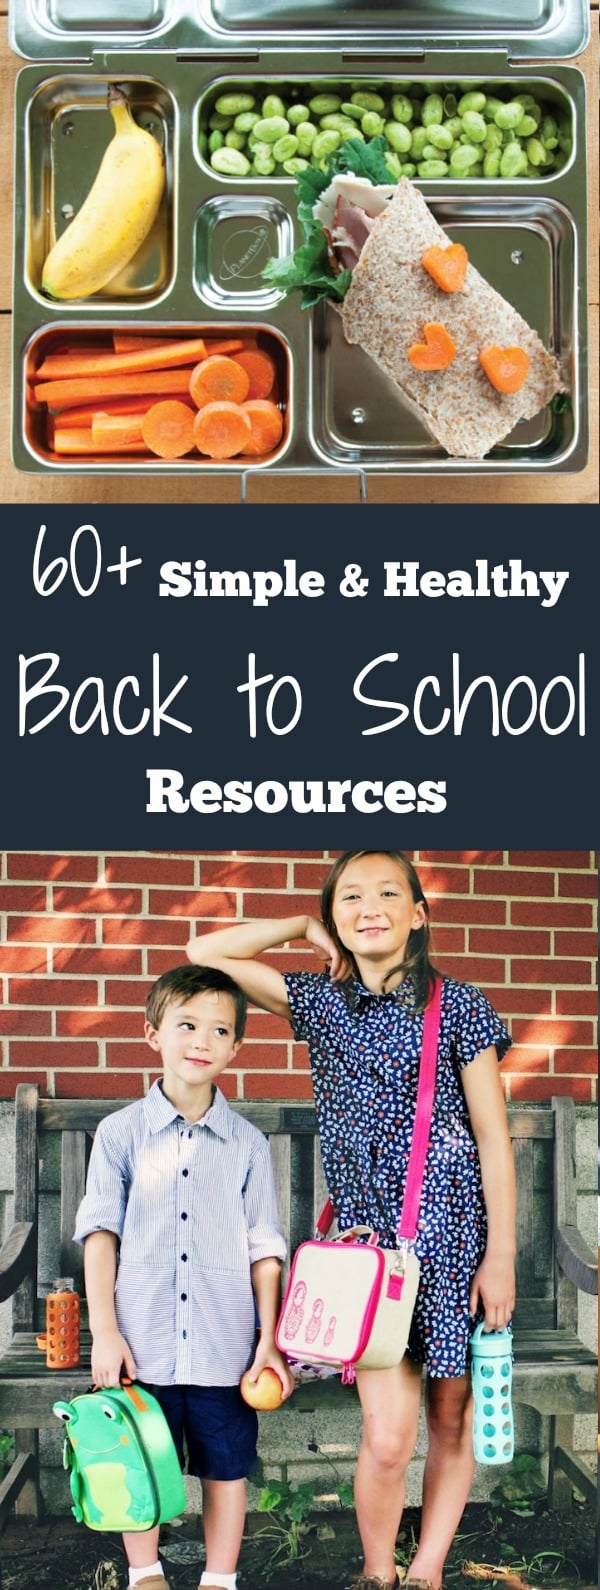 While you'll find plenty of green Back to School advice in this roundup of articles and links, I hope you'll also spend some time enjoying the articles on family activities and ways to put simple routines in place for your mornings, packing lunches, and planning dinners.